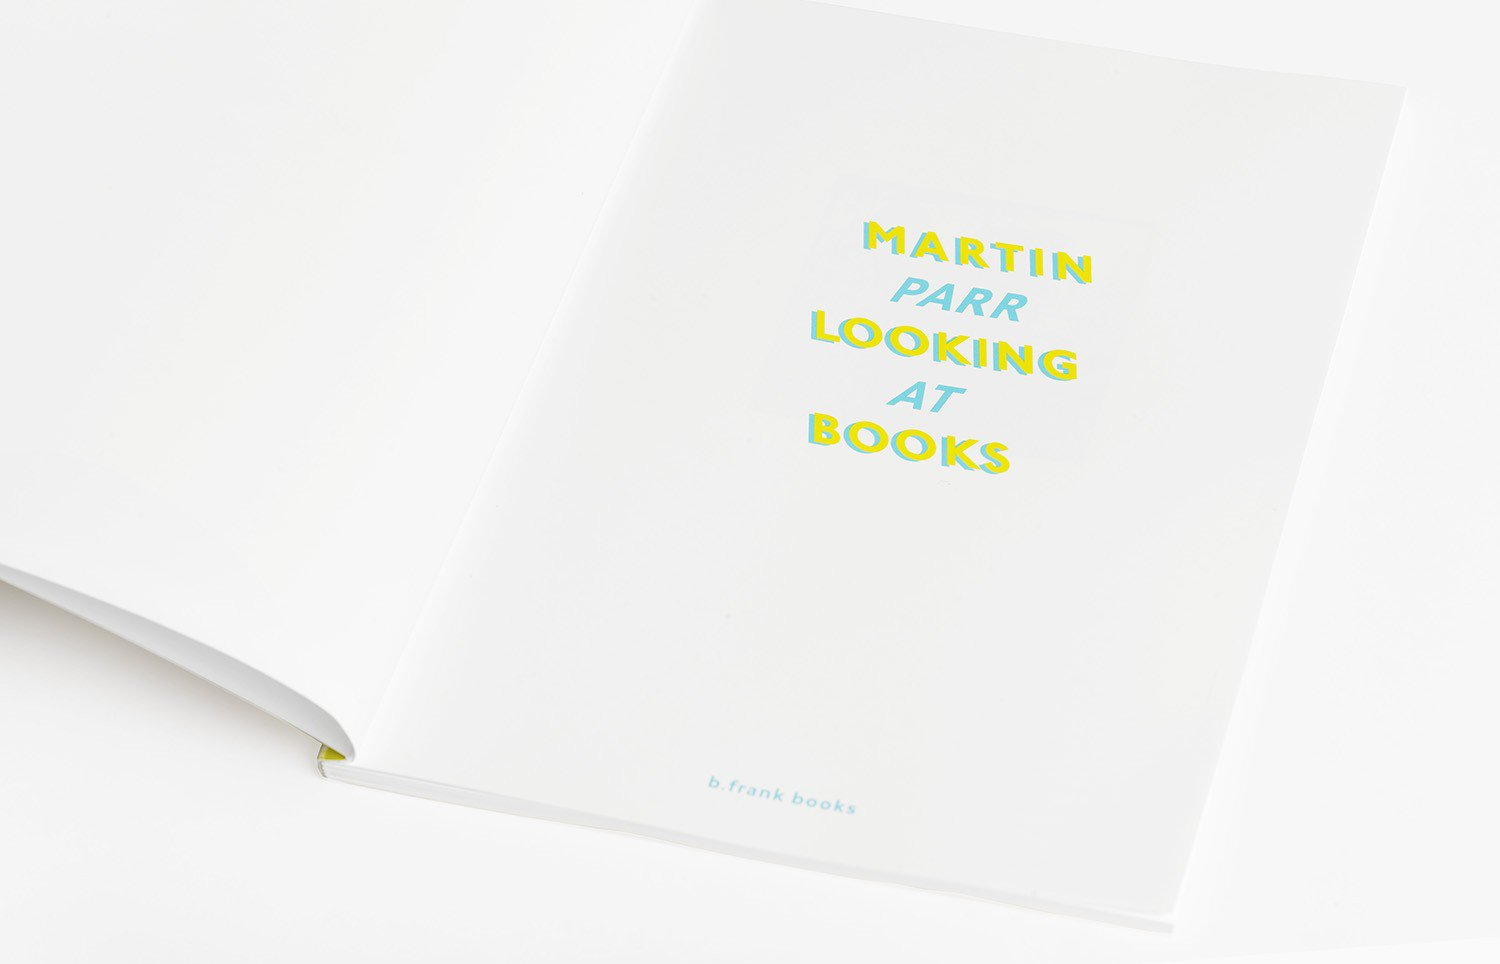 martin parr looking at books 4